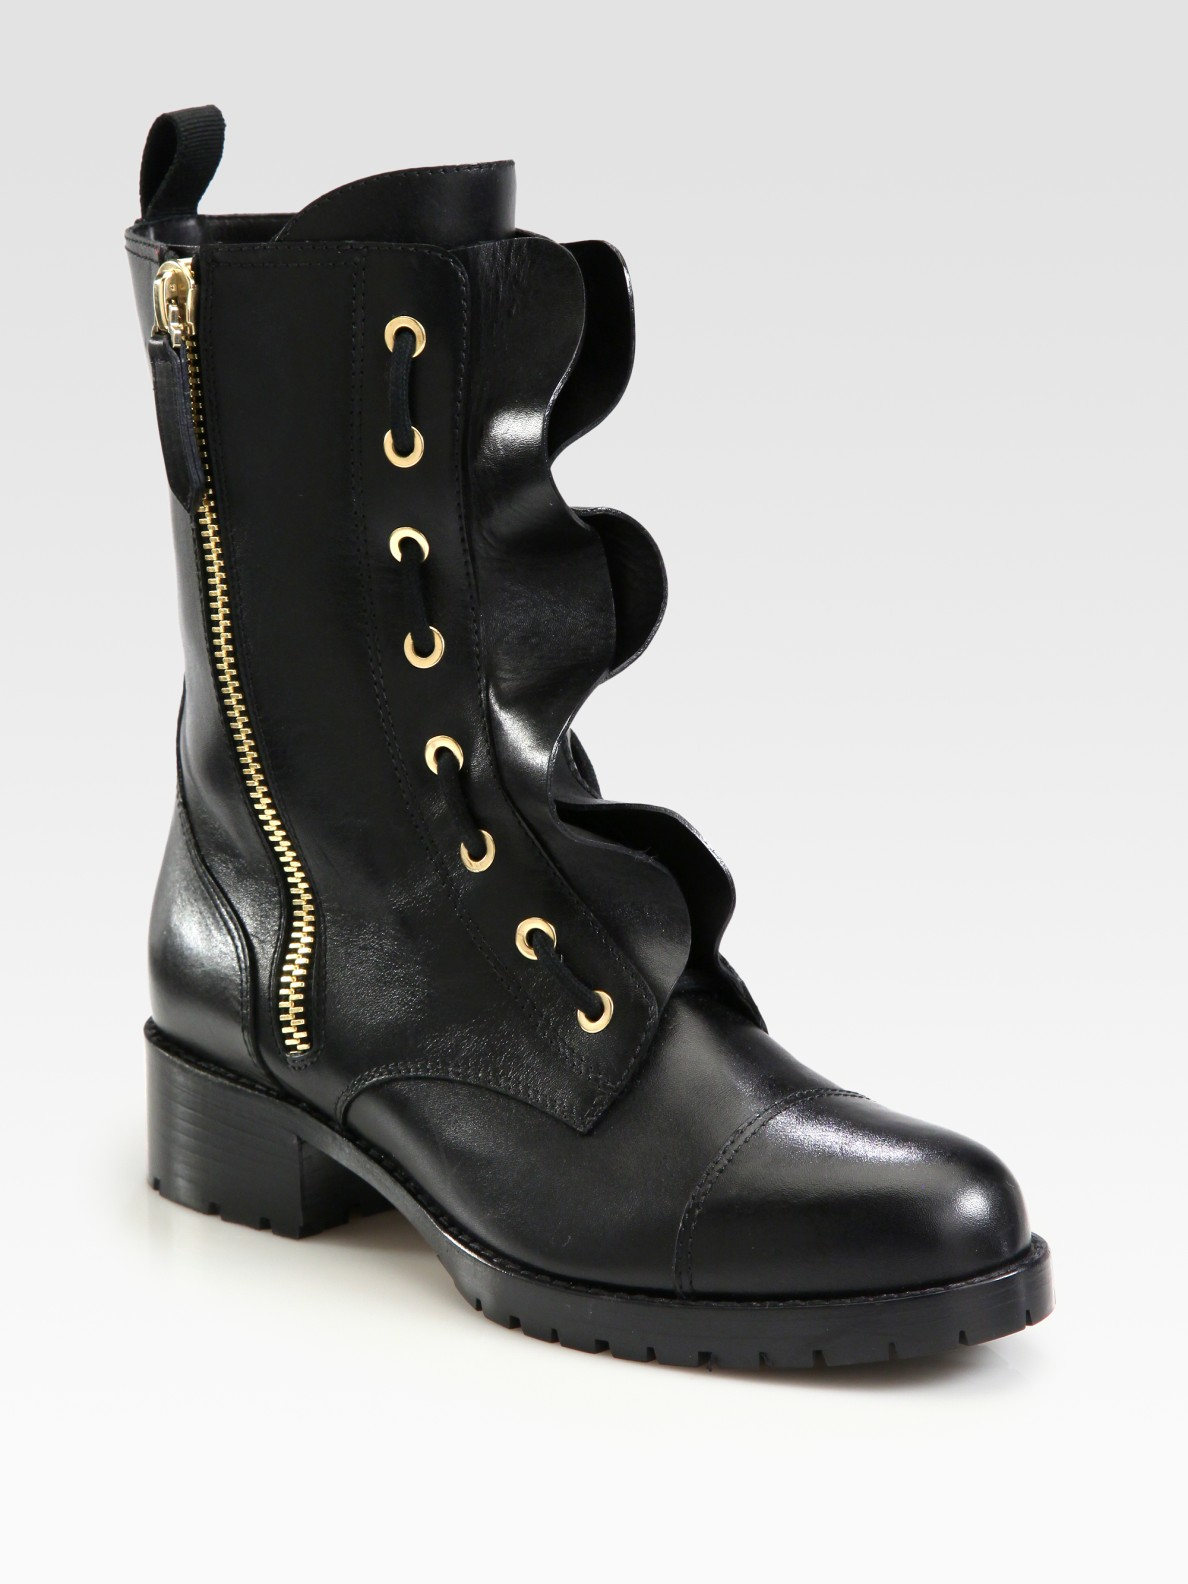 Valentino Ruffled Leather Motorcycle Boots In Black - Lyst-1917